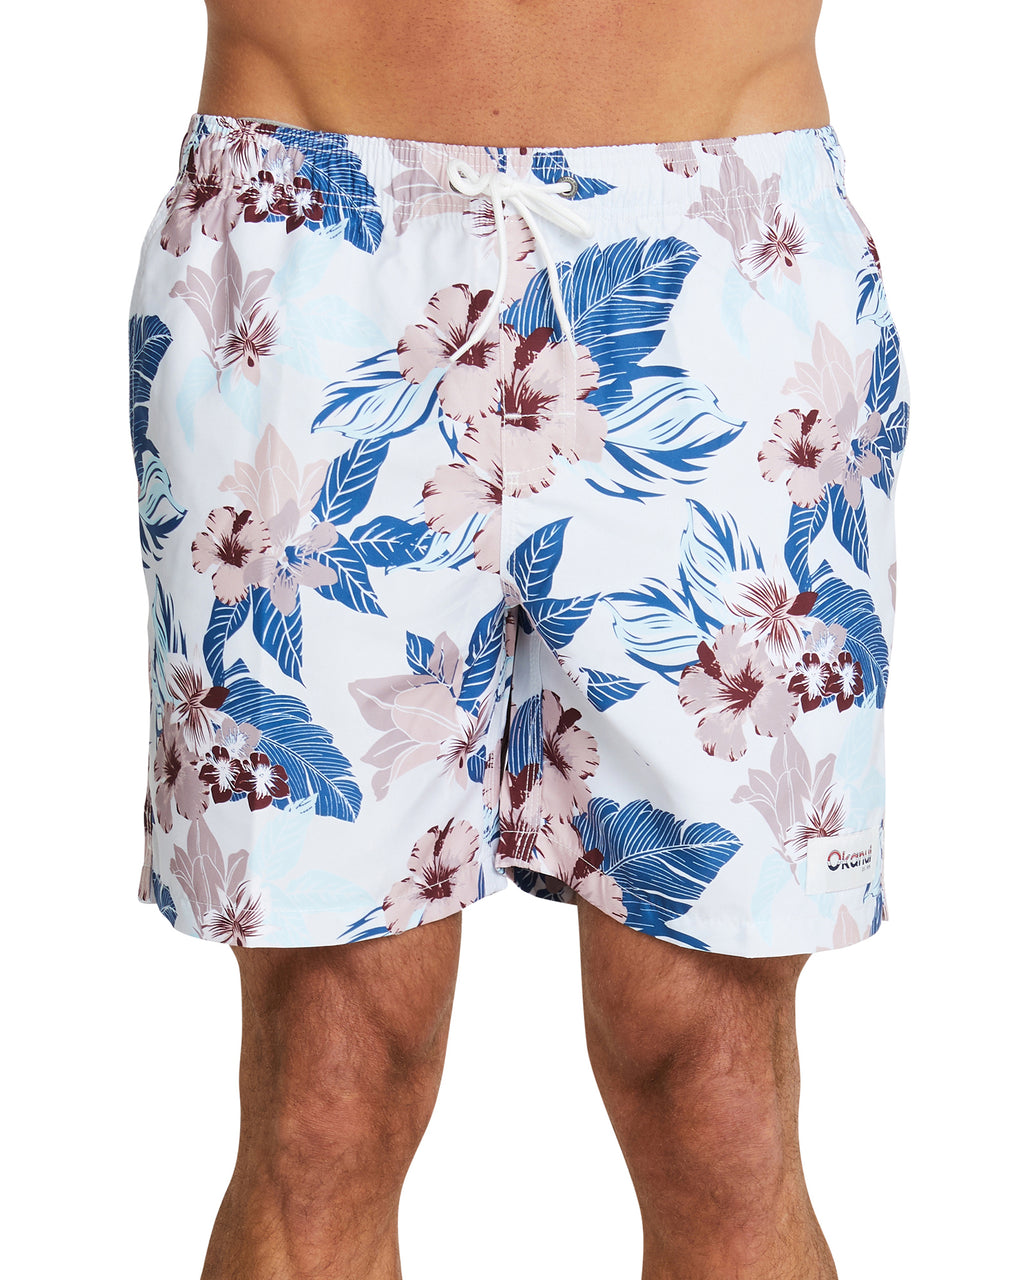 Swim Short - The Farrelly - Natural - 17""